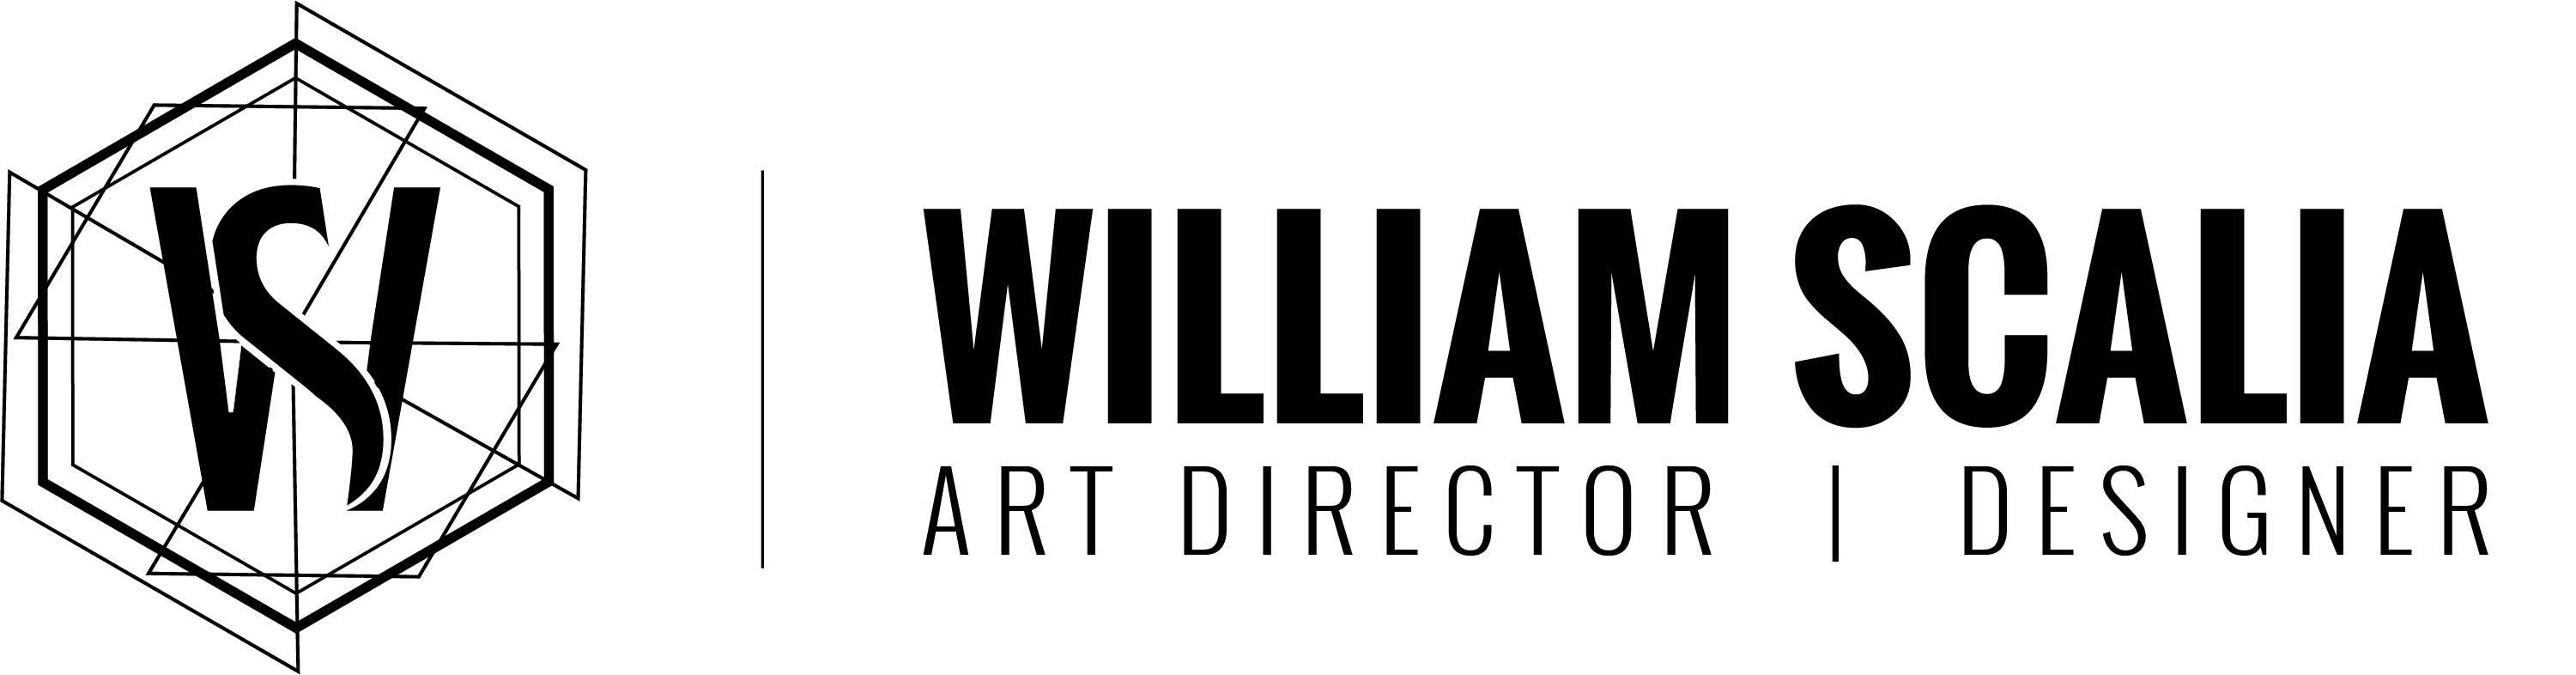 WILLIAM SCALIA | ART DIRECTOR & DESIGNER - Resume